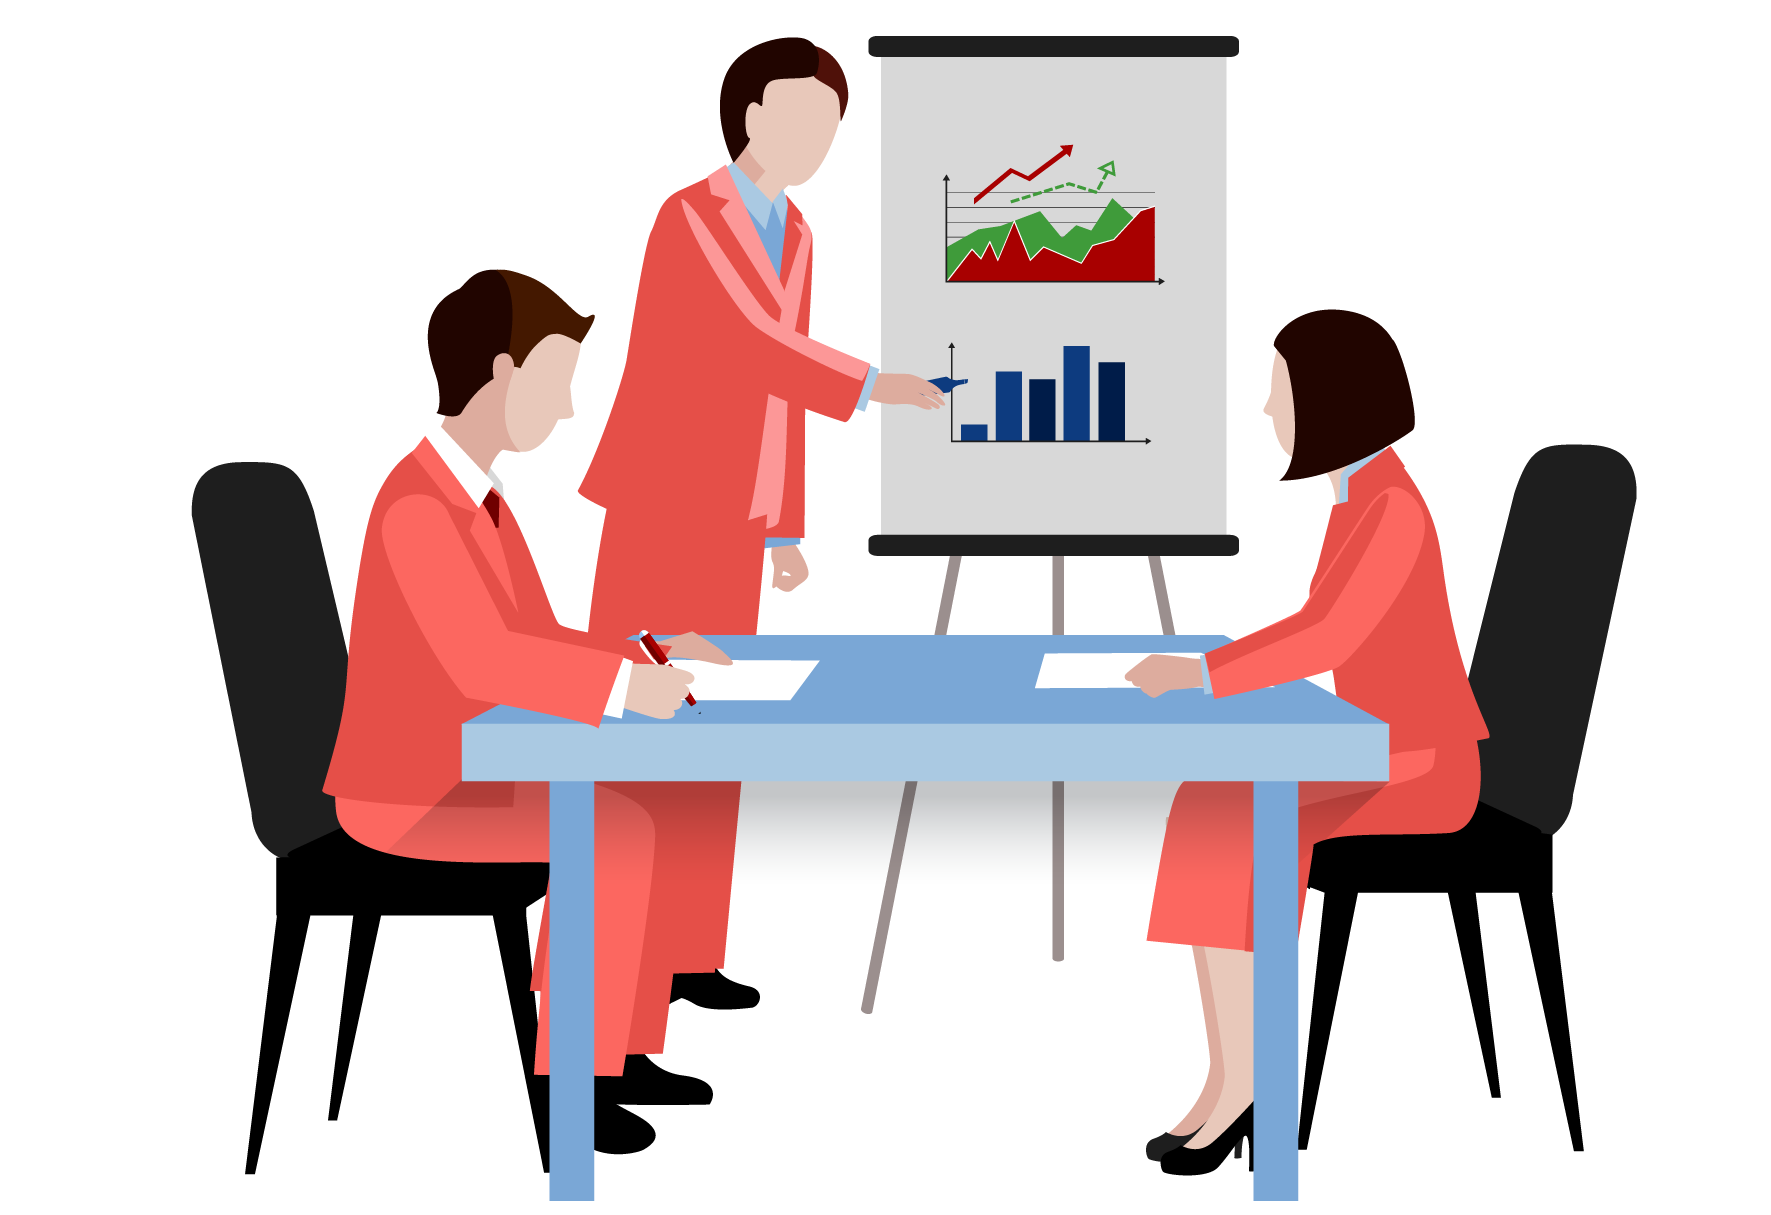 Sales team leader presenting sales figures in bar diagram with two employees on a white board